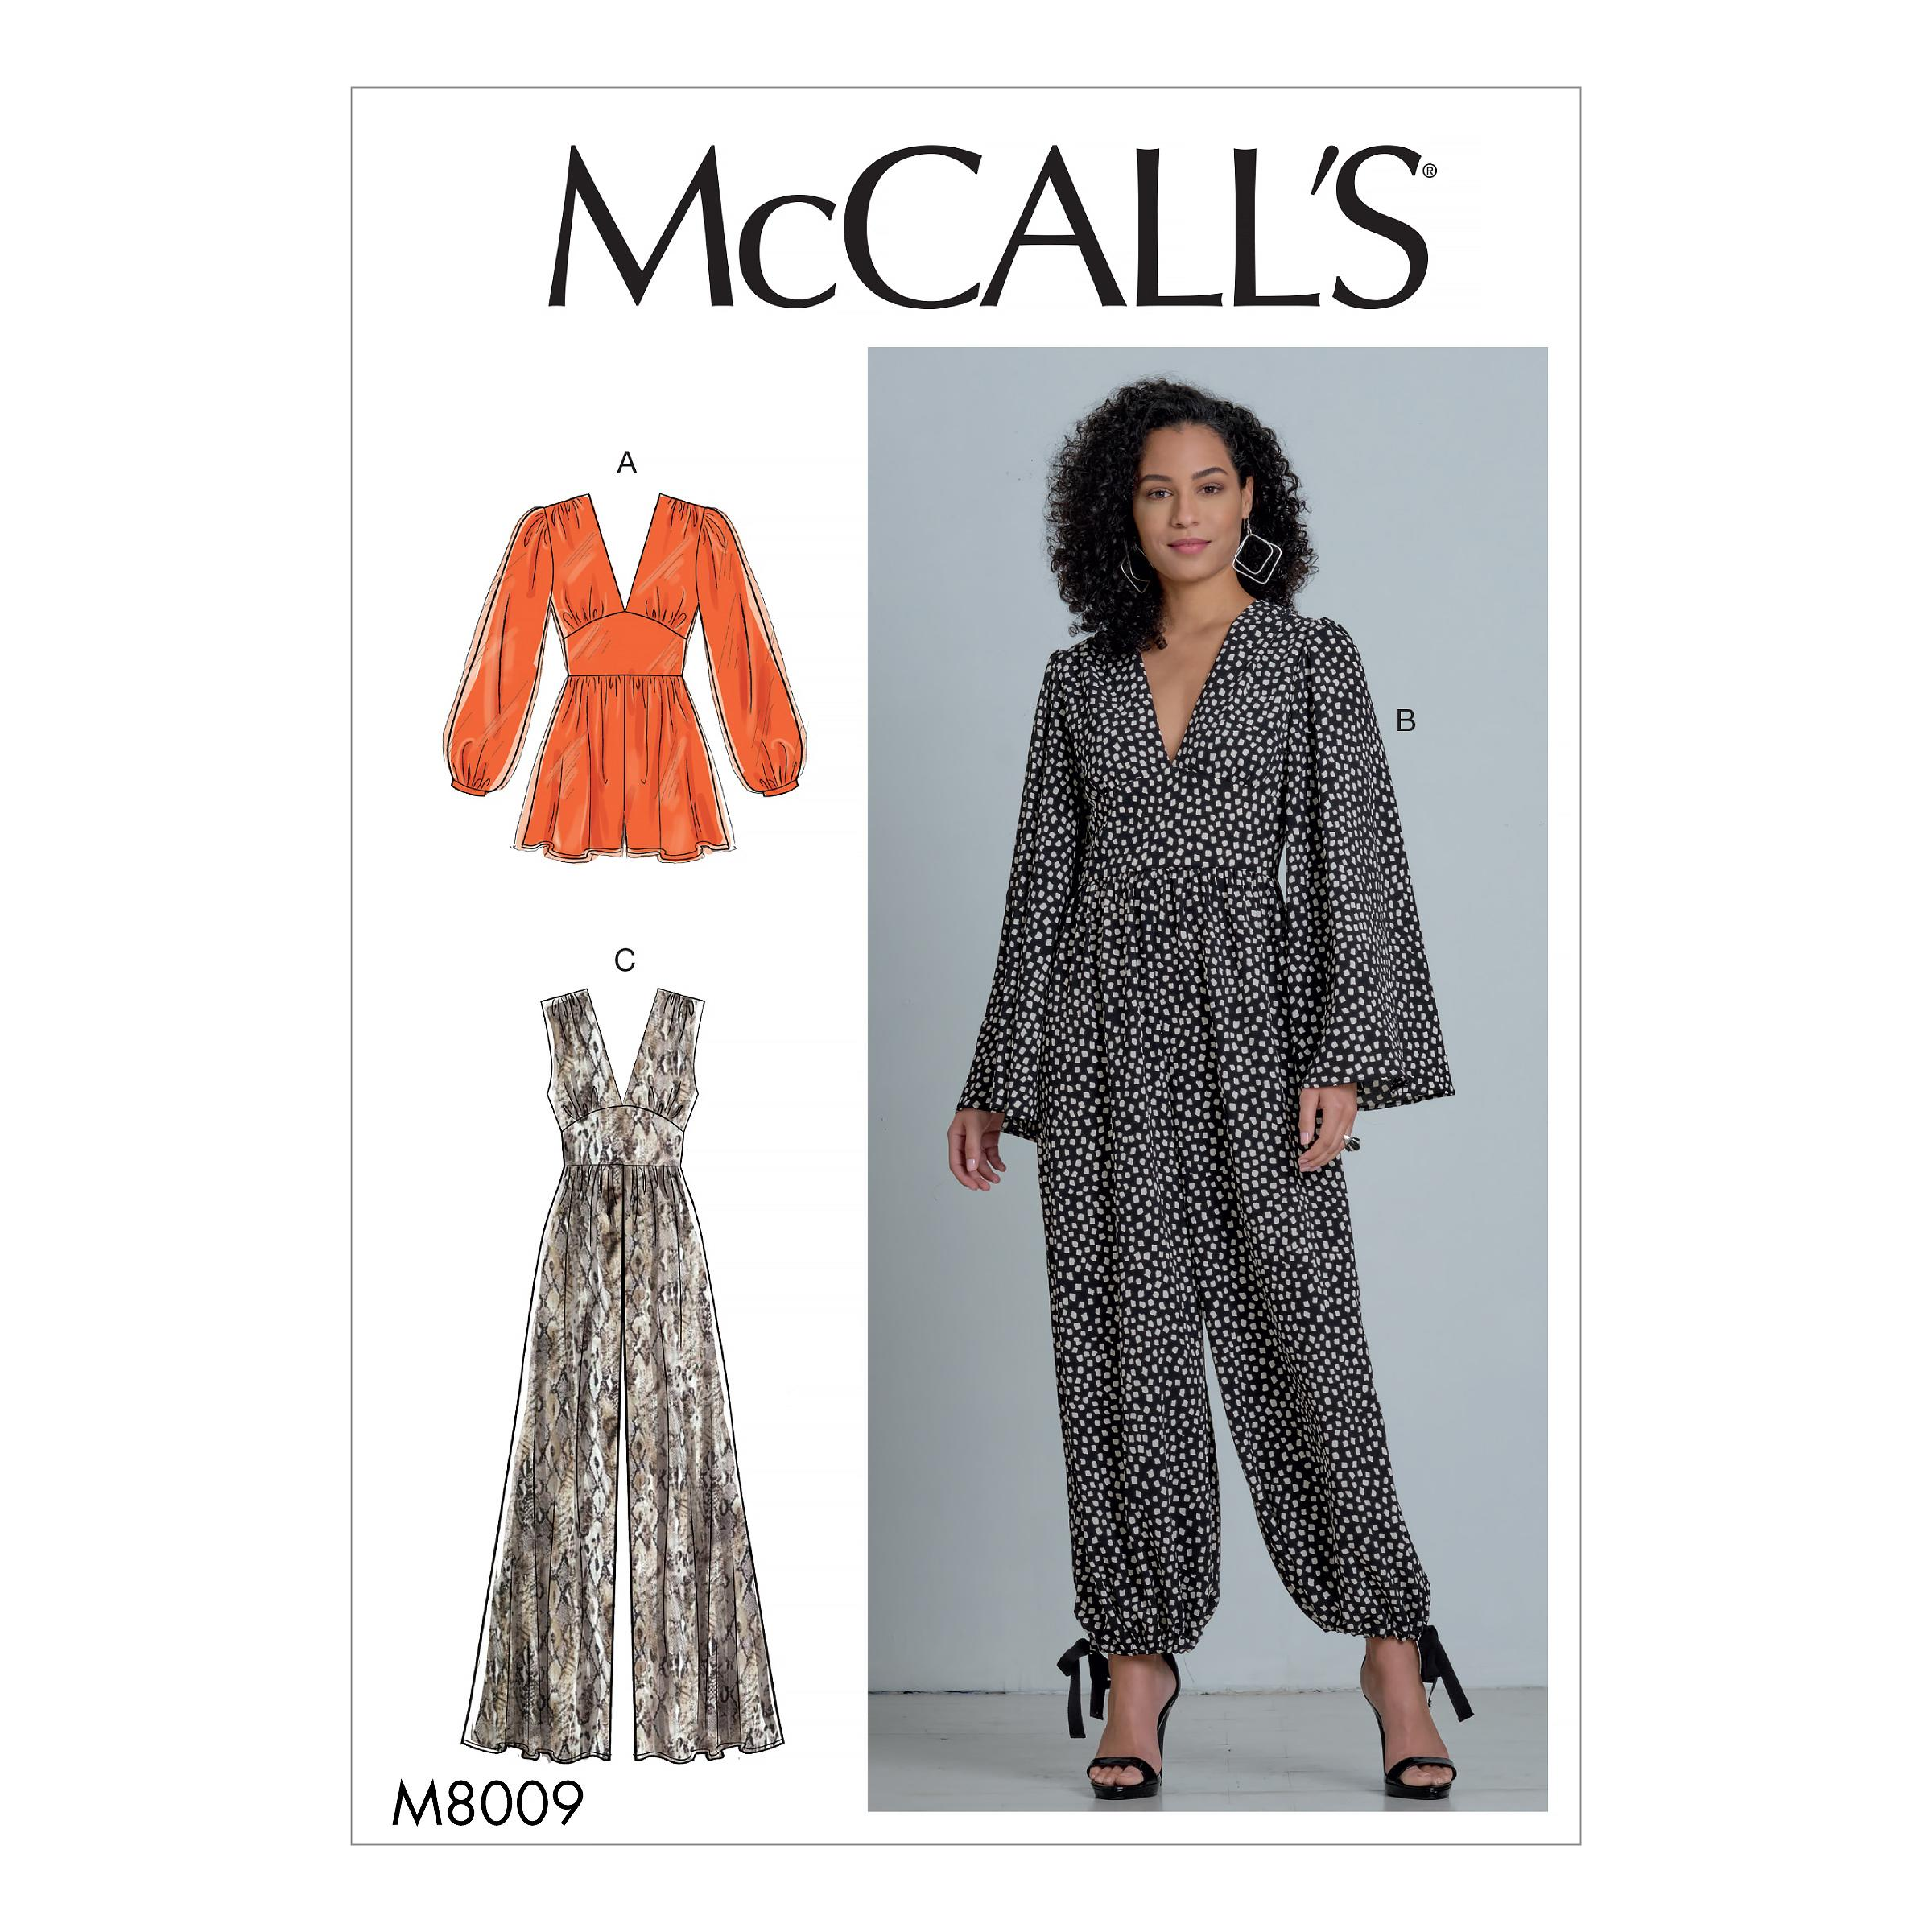 McCalls M8009 Misses Pants, Jumpsuits & Shorts